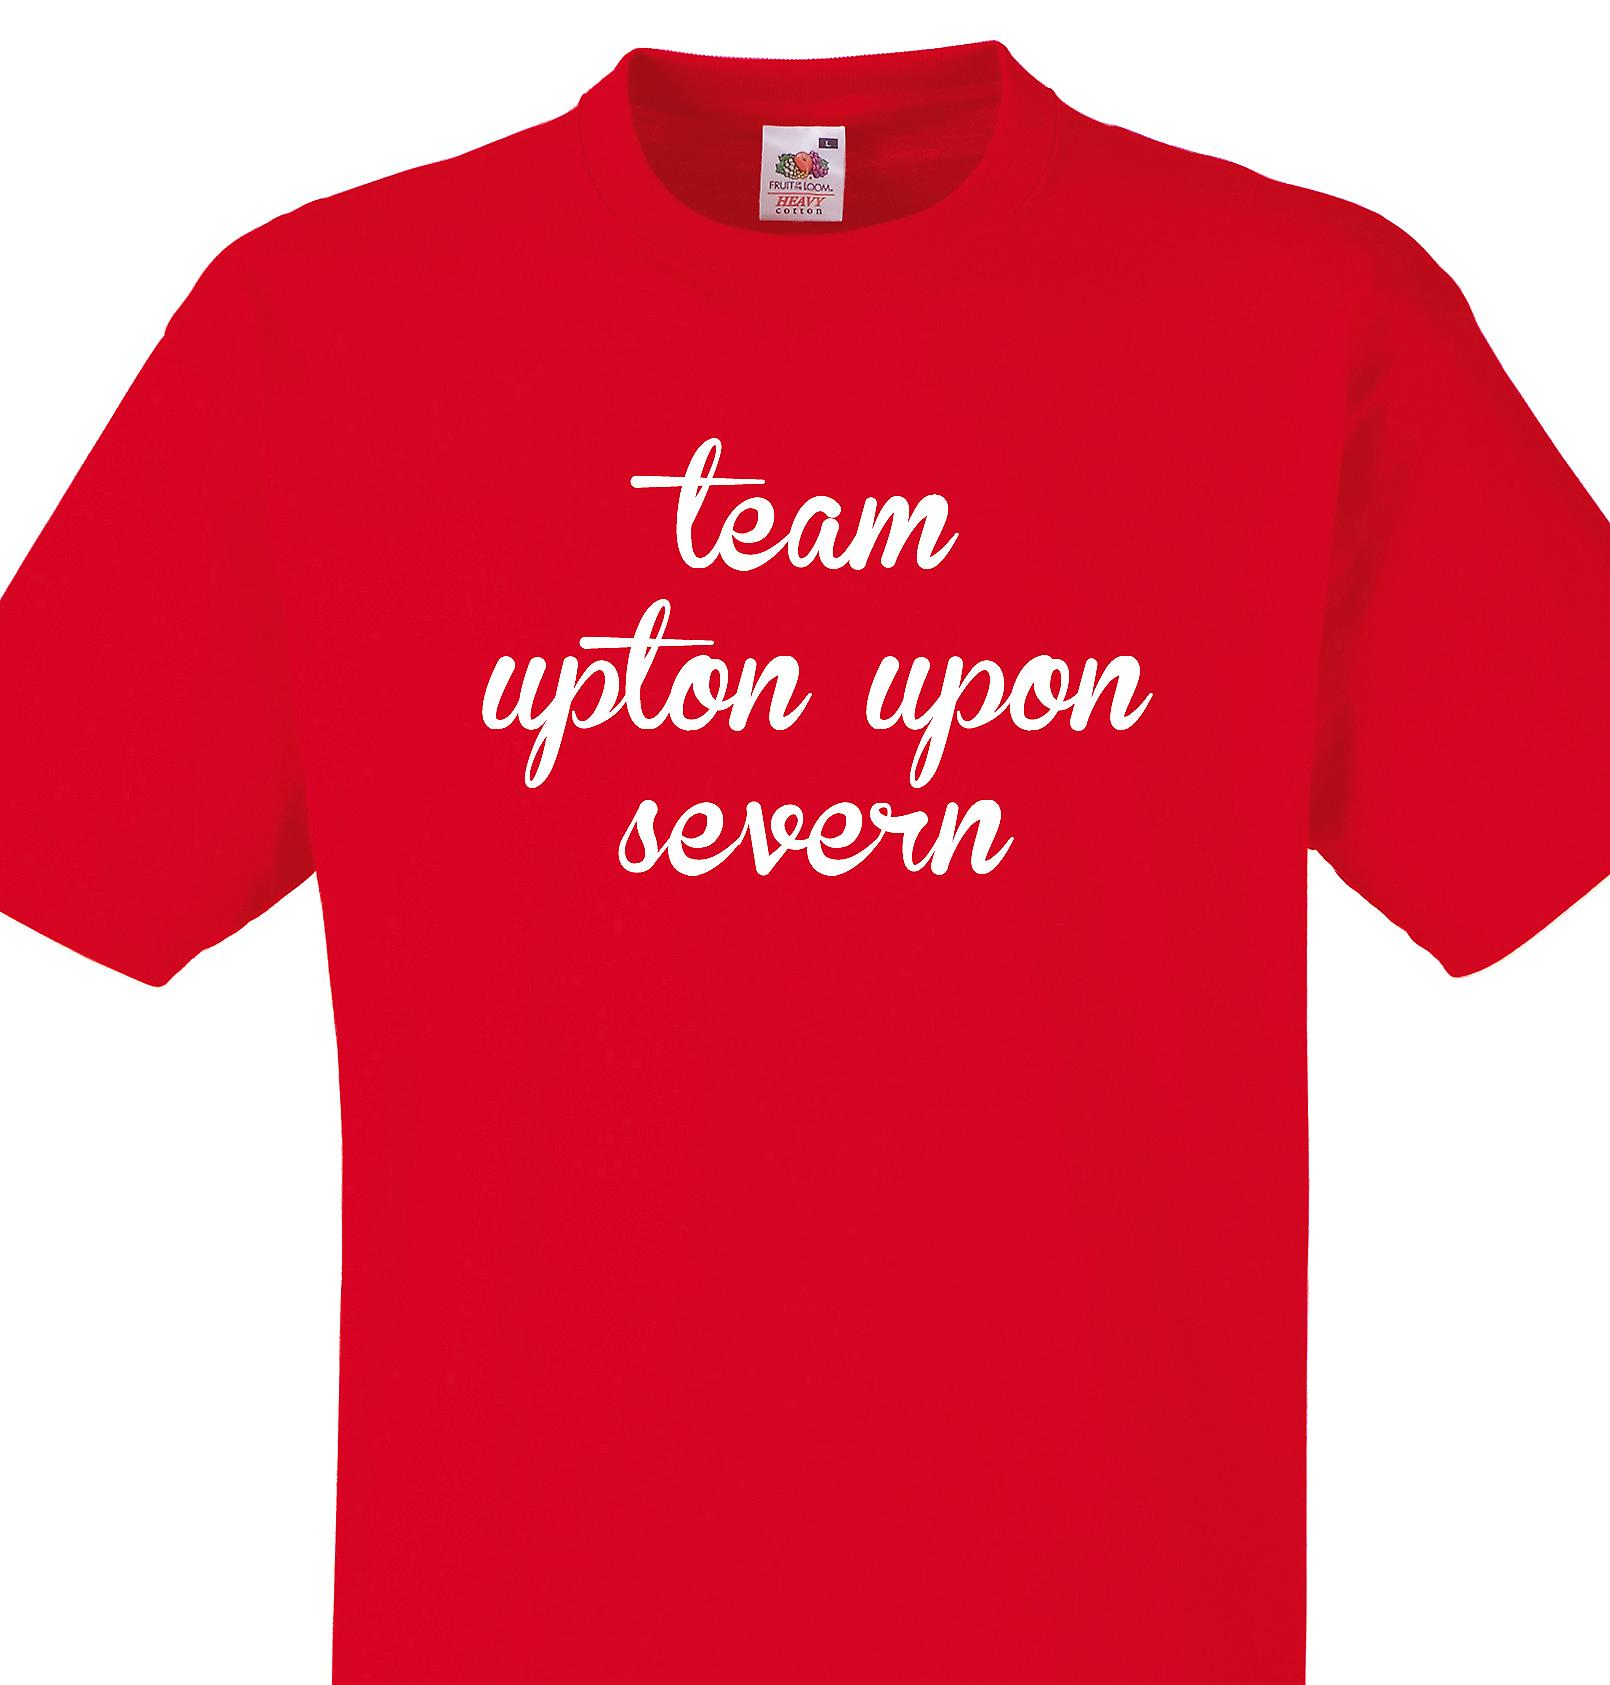 Team Upton upon severn Red T shirt